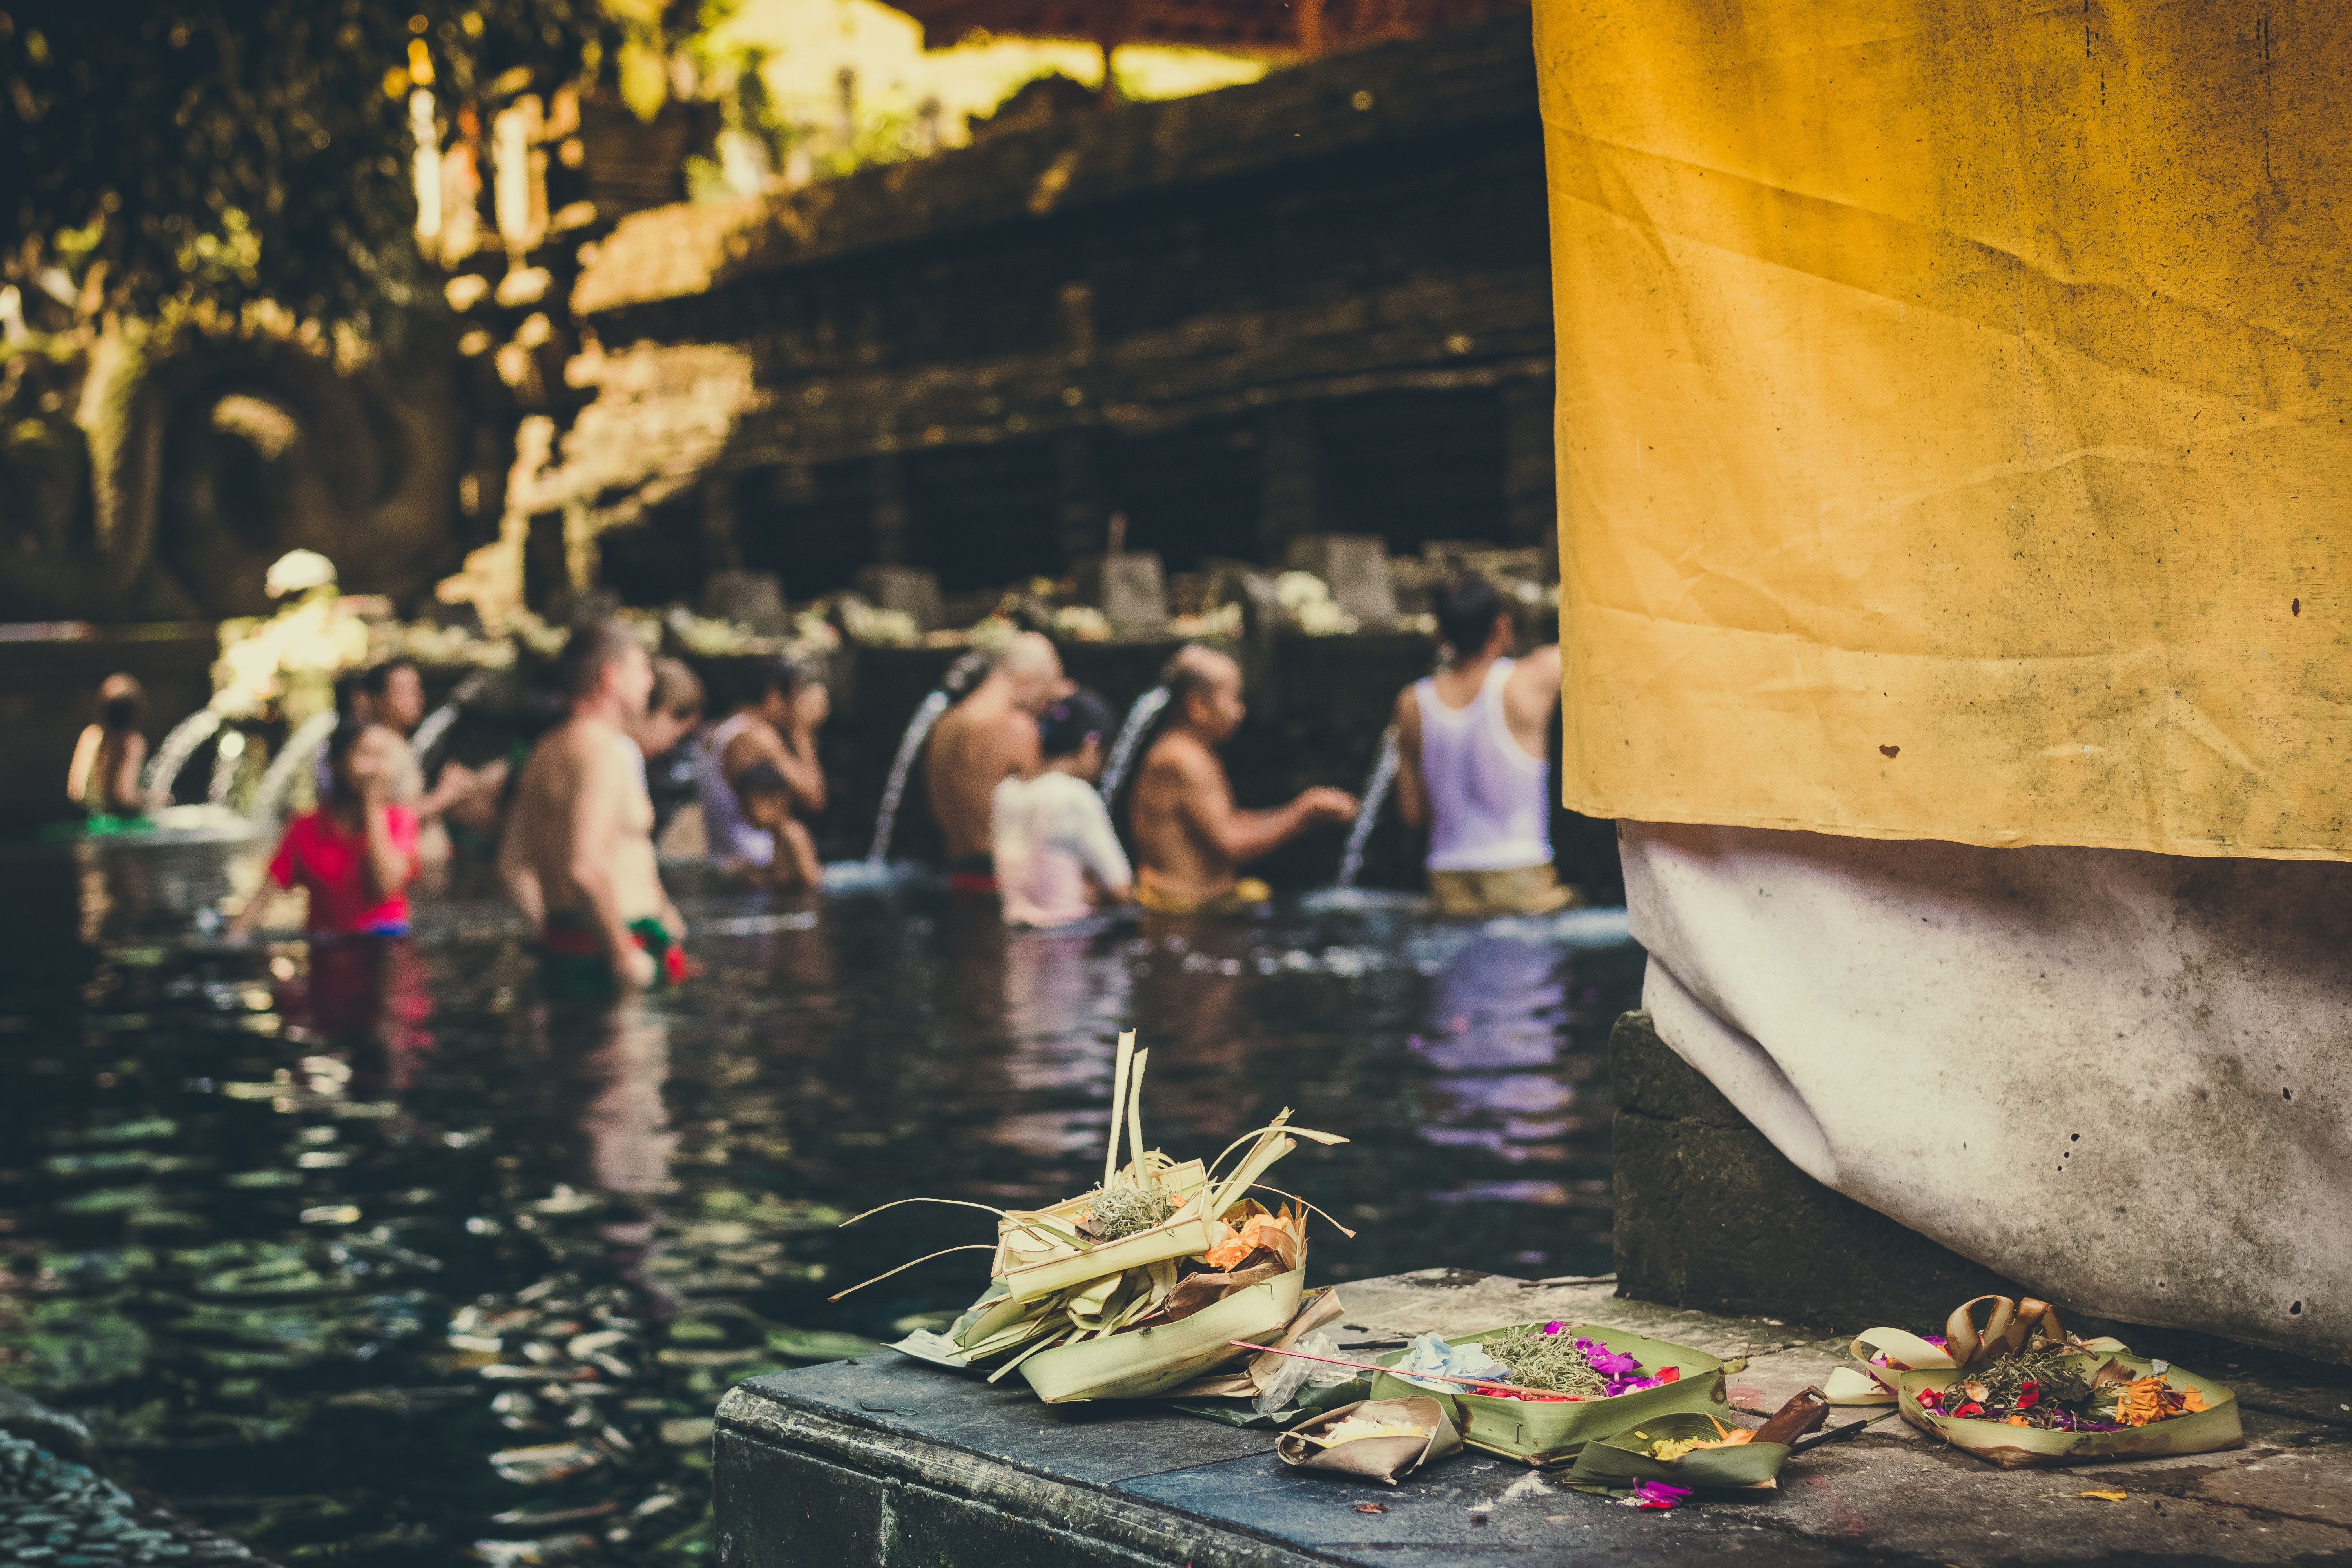 Photo of People in the Body of Water Taking a Bath, Adult, Pray, Prayer, Purification, HQ Photo